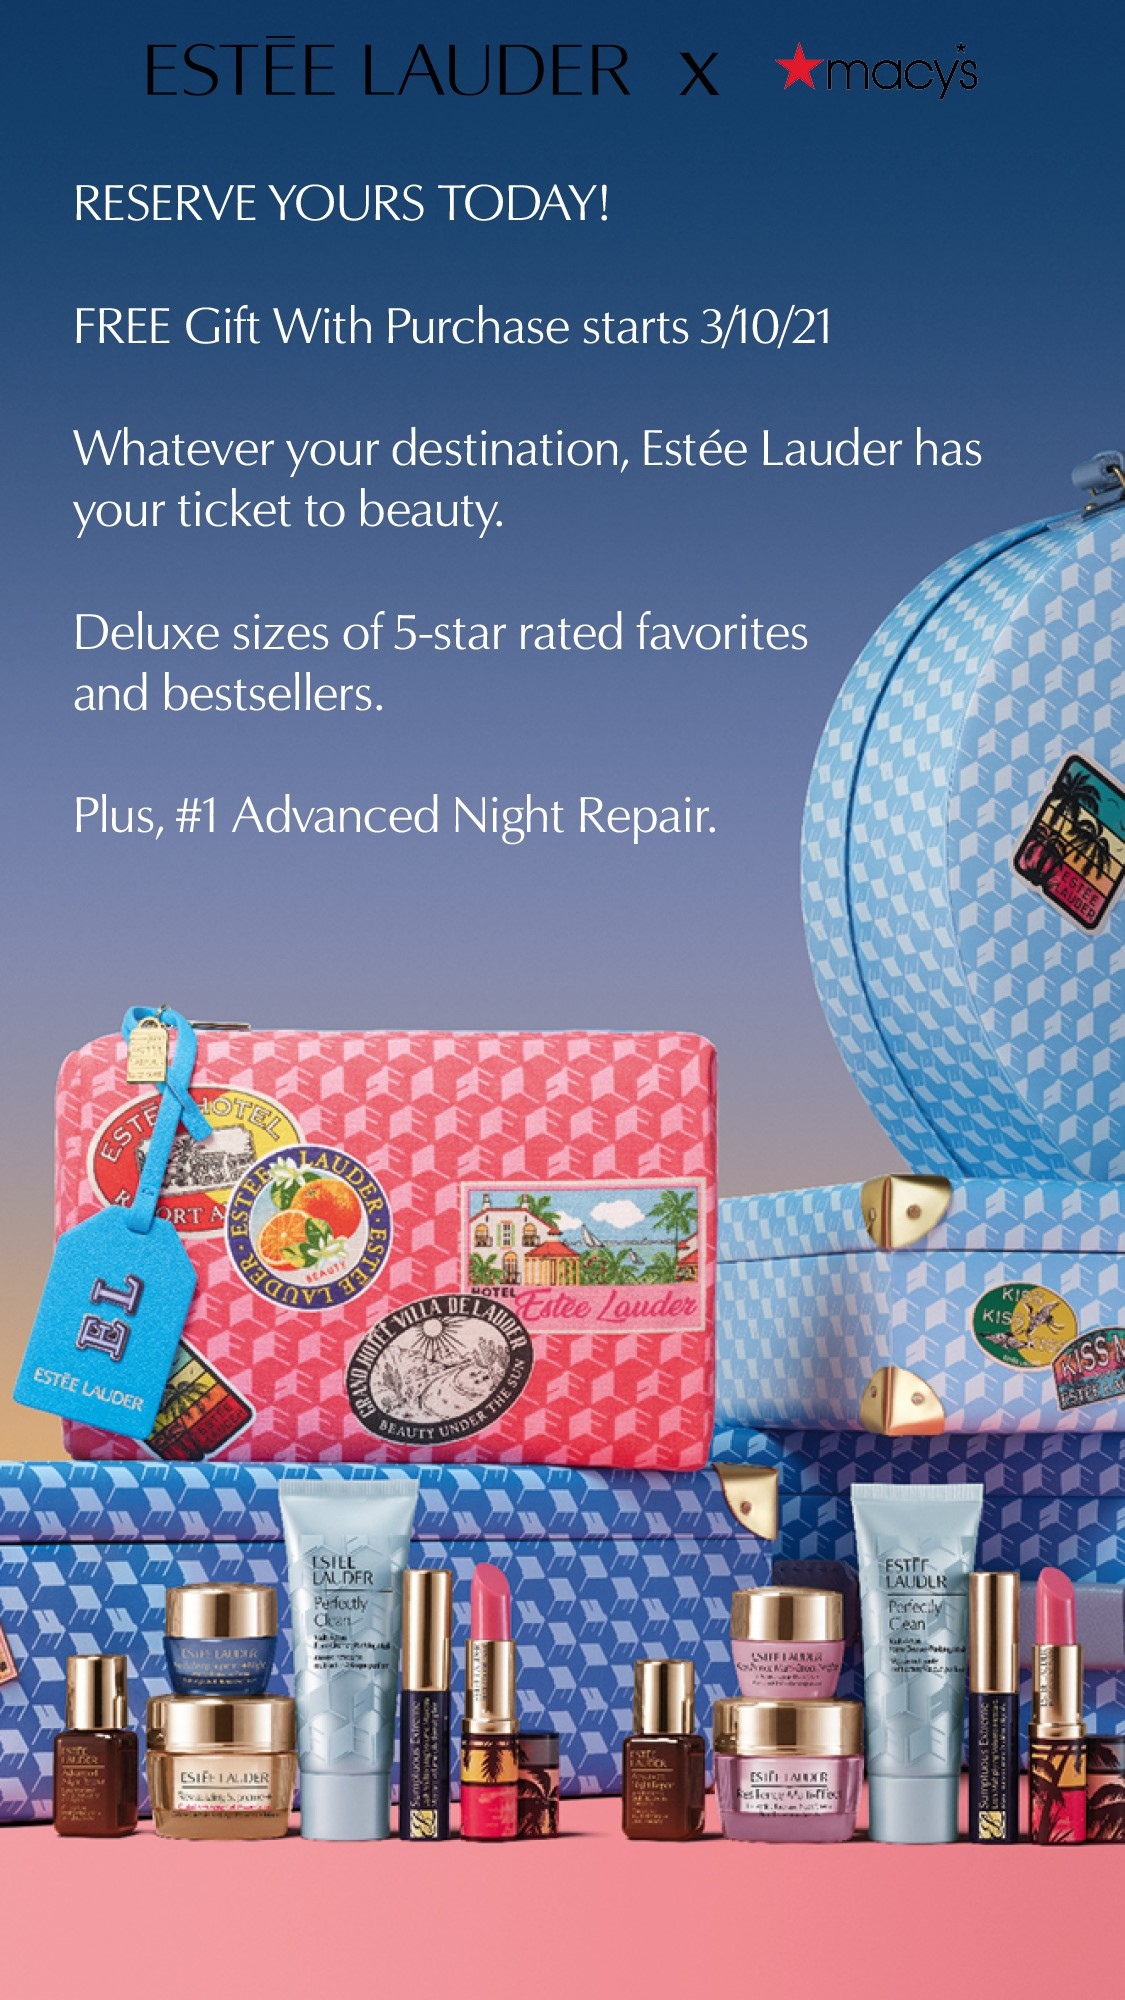 Estee Laude Gift with purchase pre-sale event